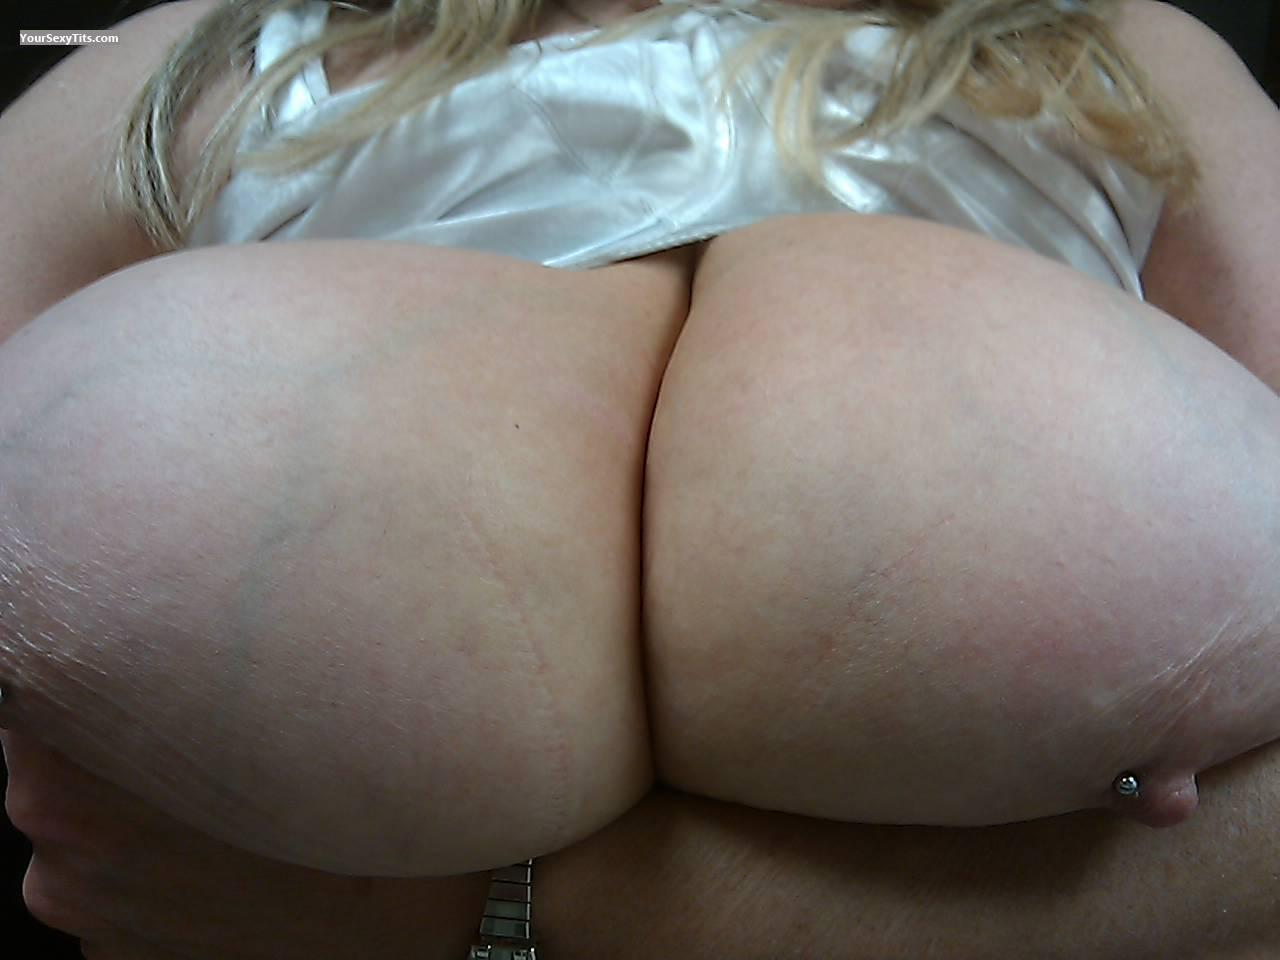 My Big Tits Selfie by Pix